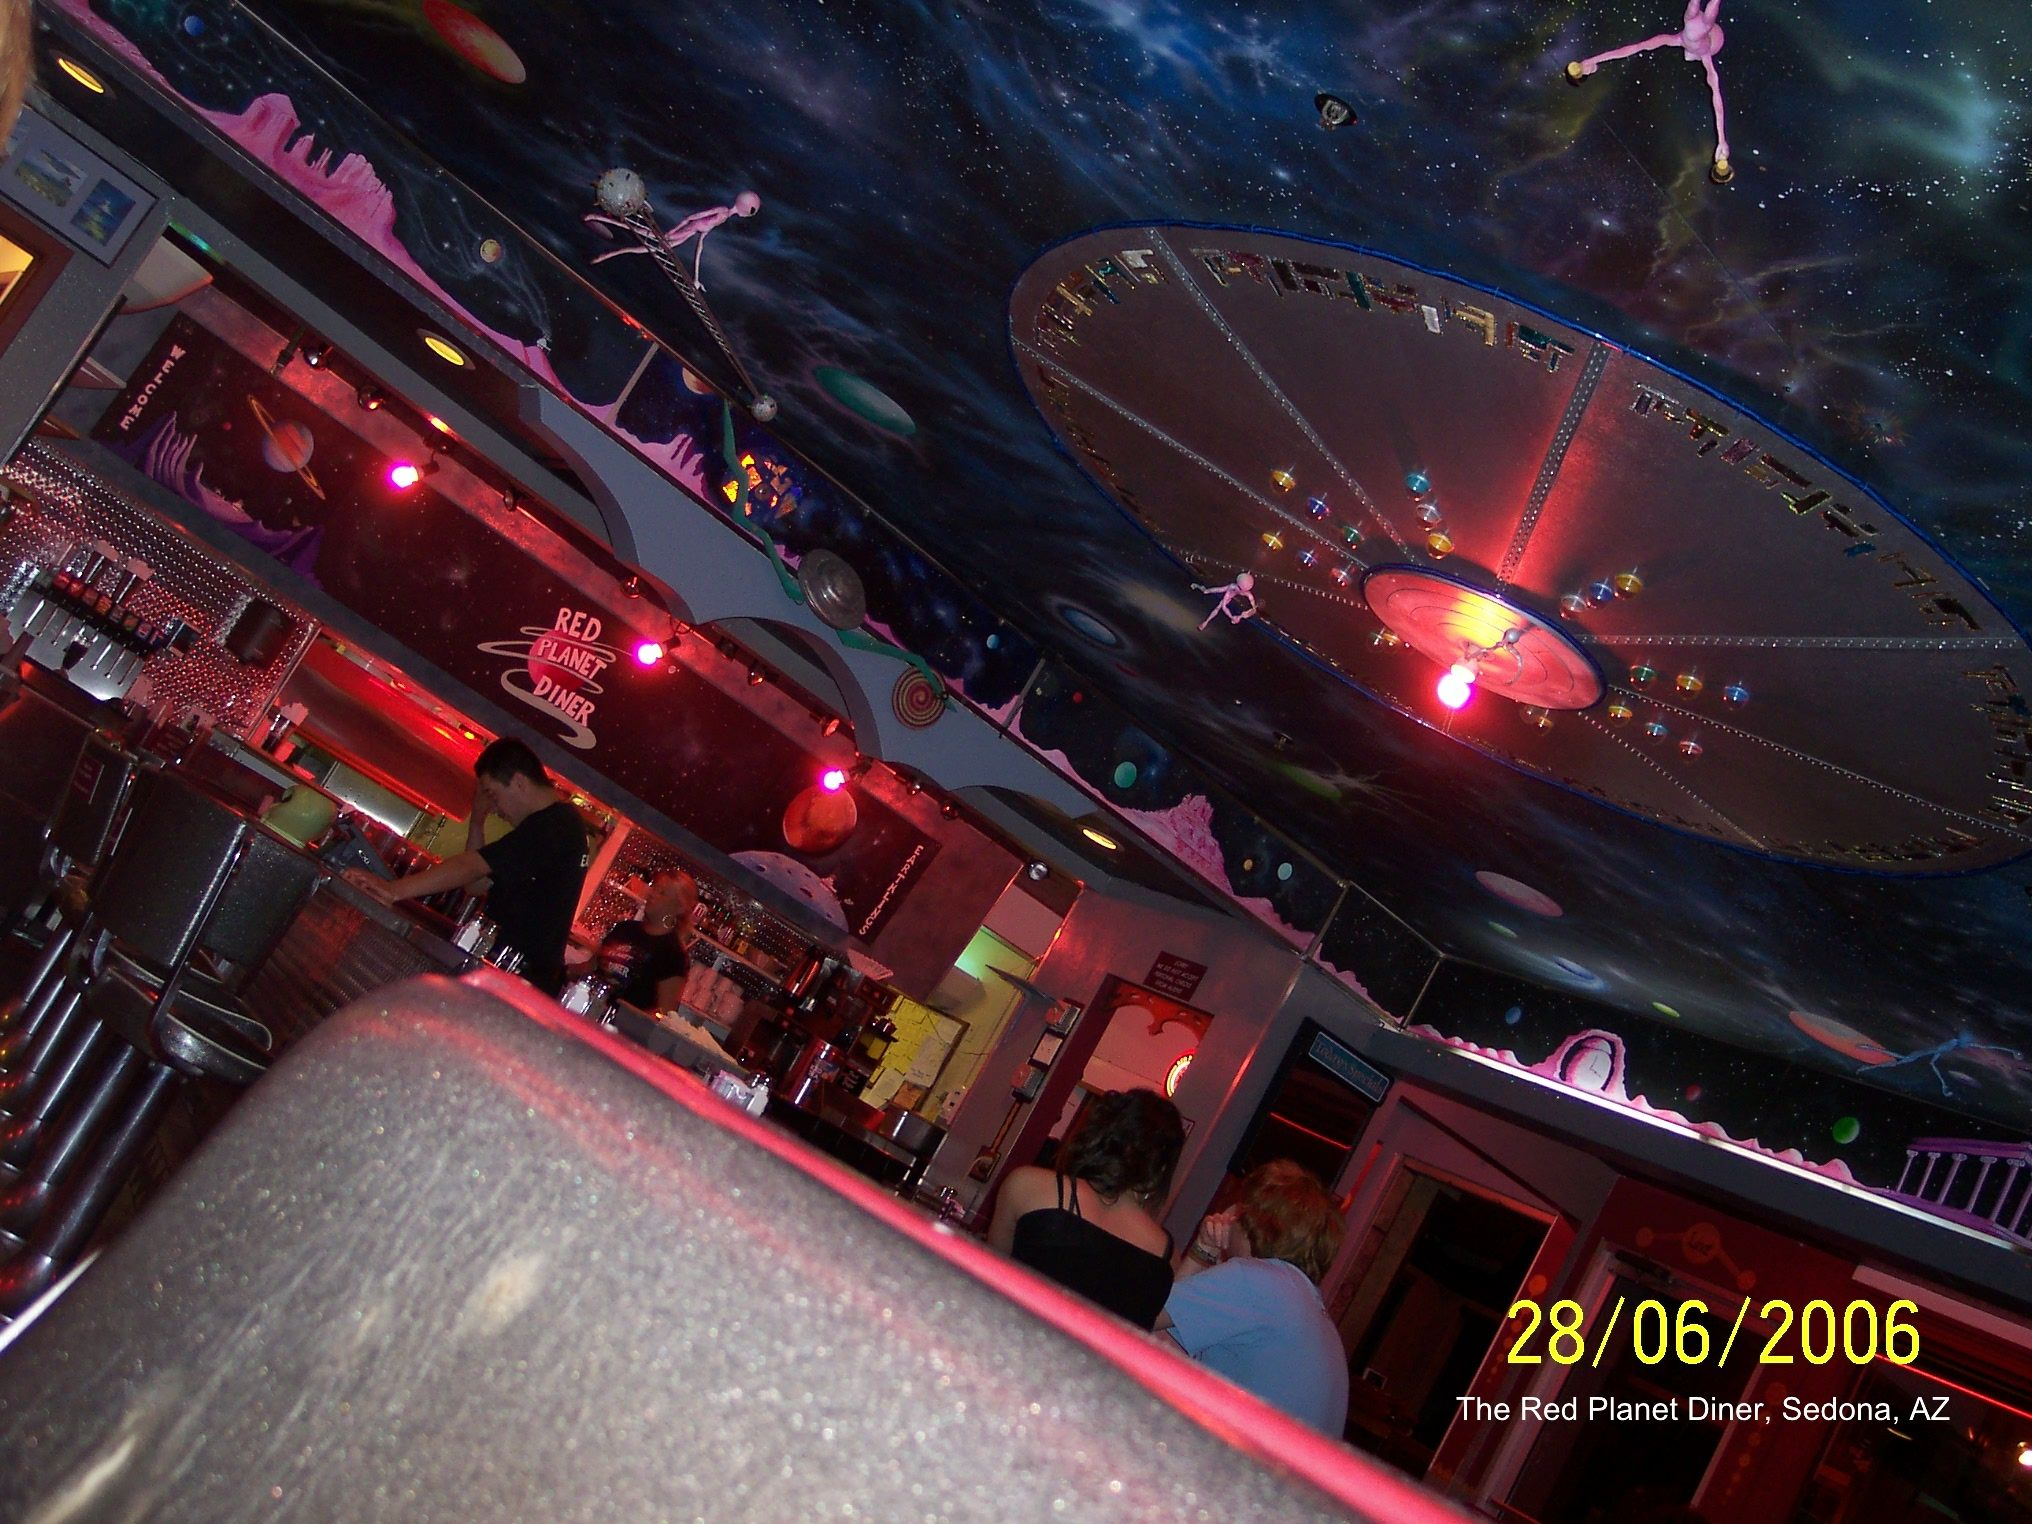 Space Themed Bedroom Chula Vista Resort In Wisconsin Dells Wisconsin A Review Of The